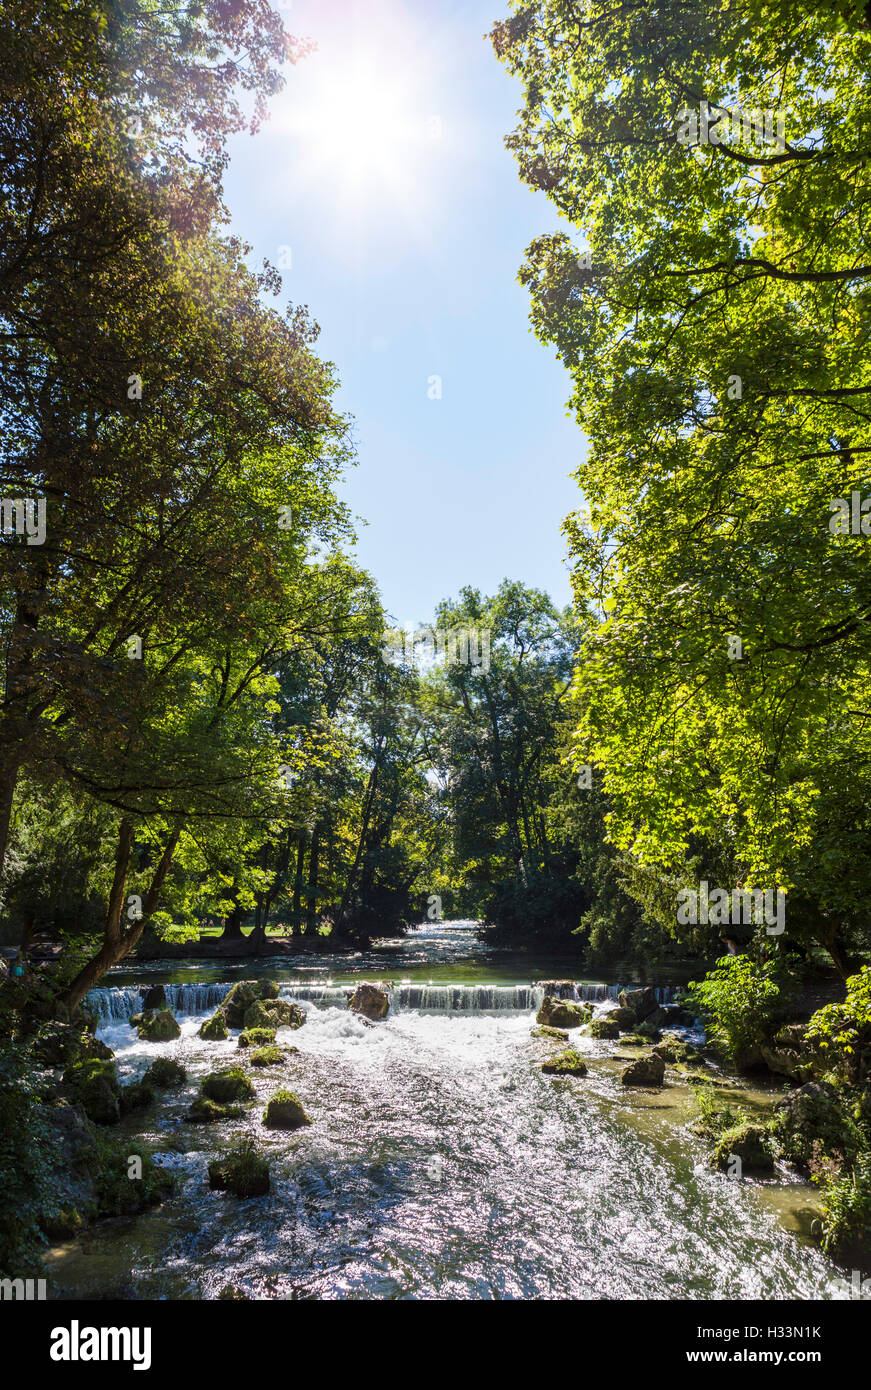 The Eisbach in the Englischer Garten, Munich, Bavaria, Germany - Stock Image